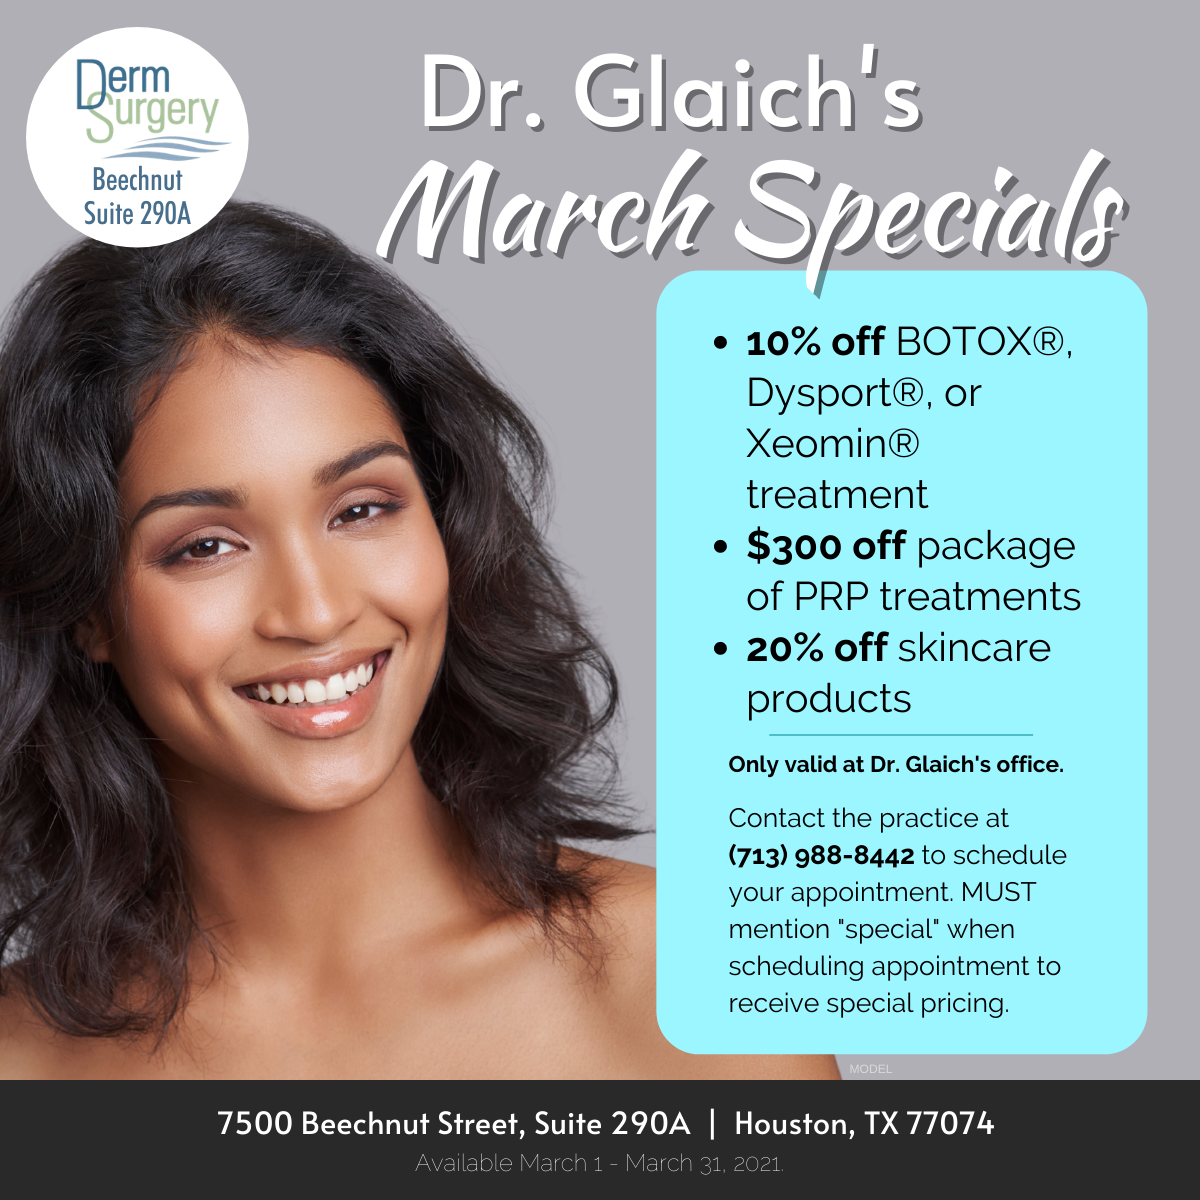 Dr. Glaich's March Specials